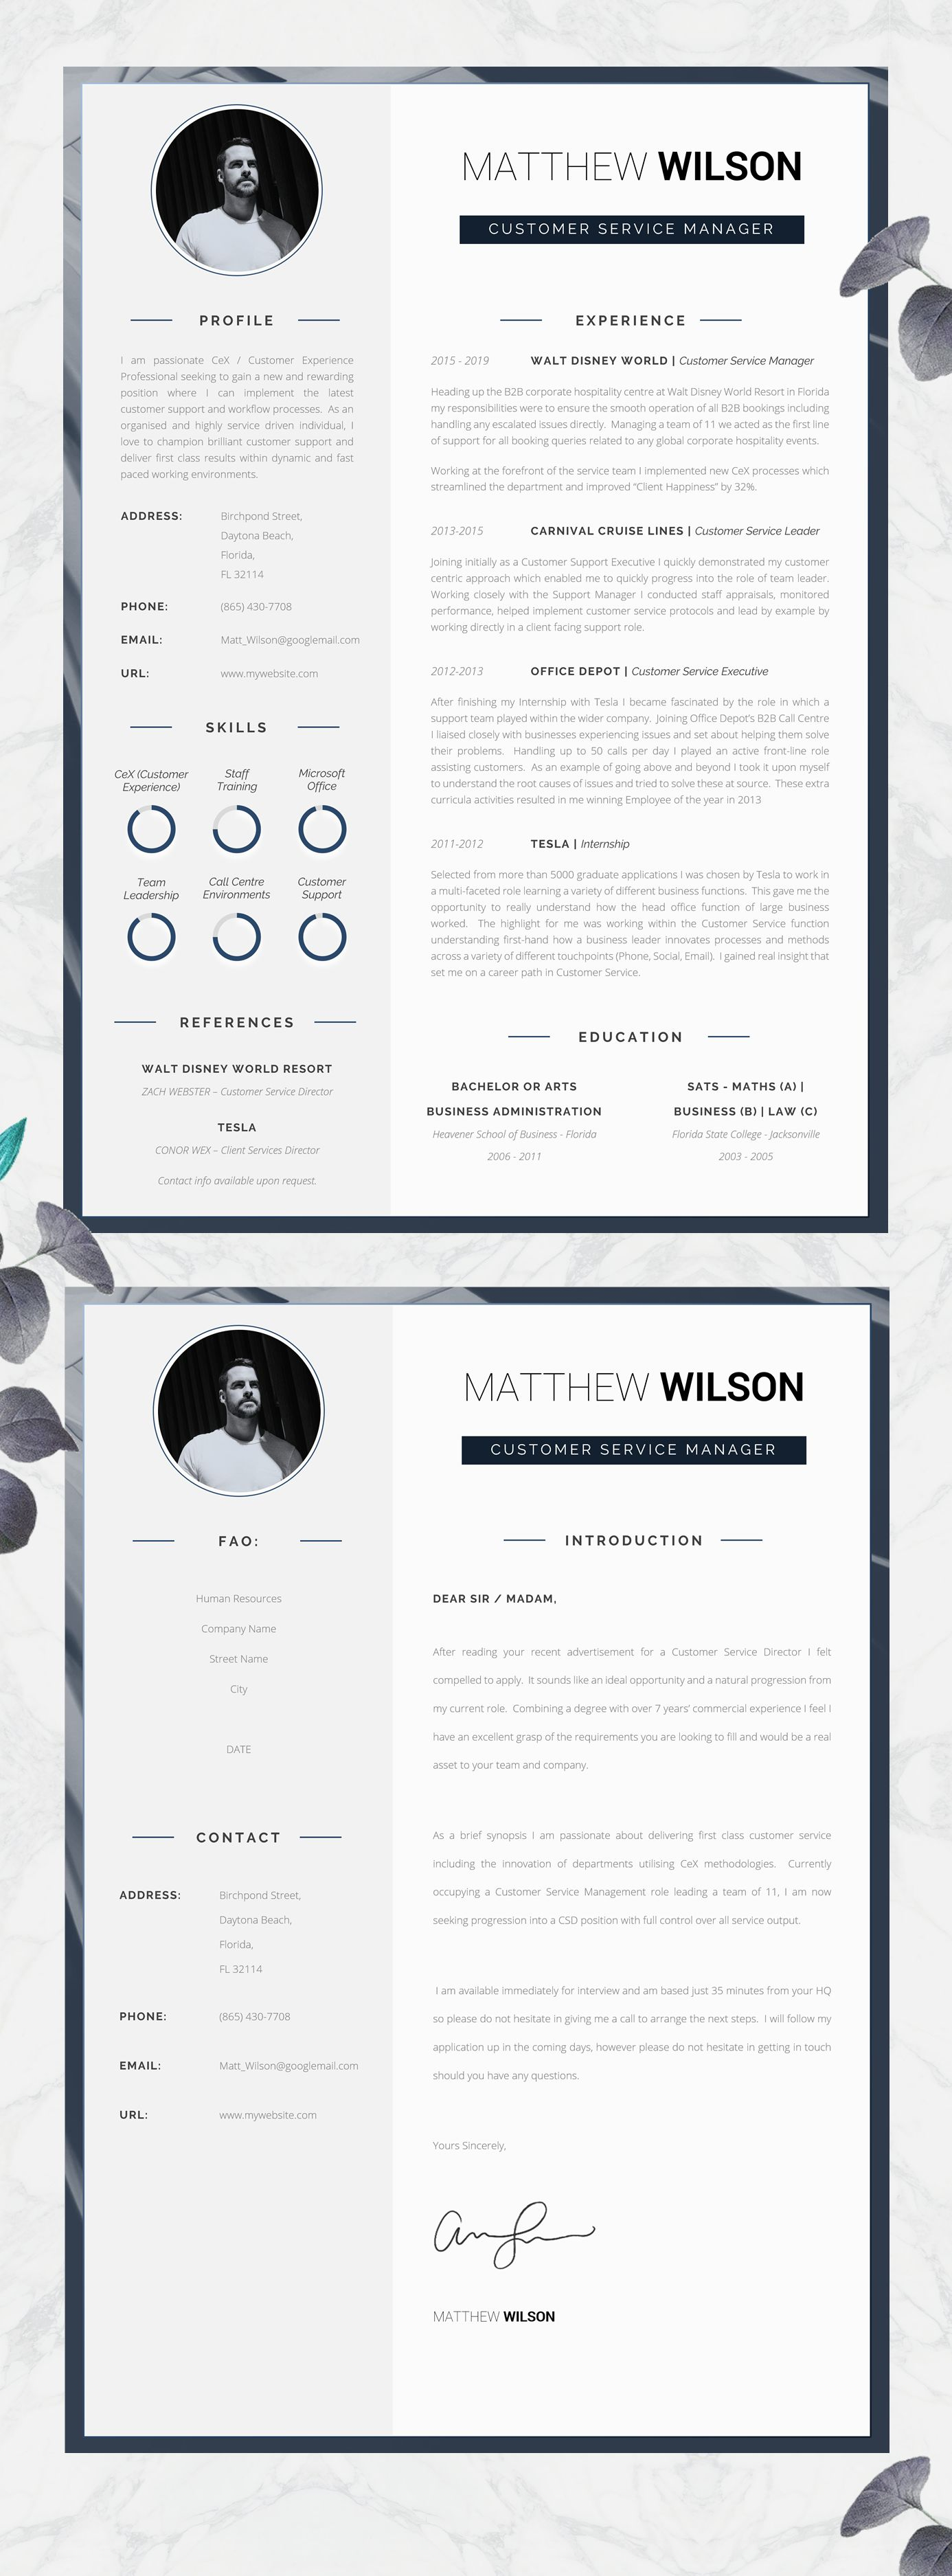 Professional Resume For Word Cover Letter Resume Advice Instant Download Mac Or Pc Cv Template Searle The Career Improvement Club Resume Design Professional Resume Advice Resume Design Template